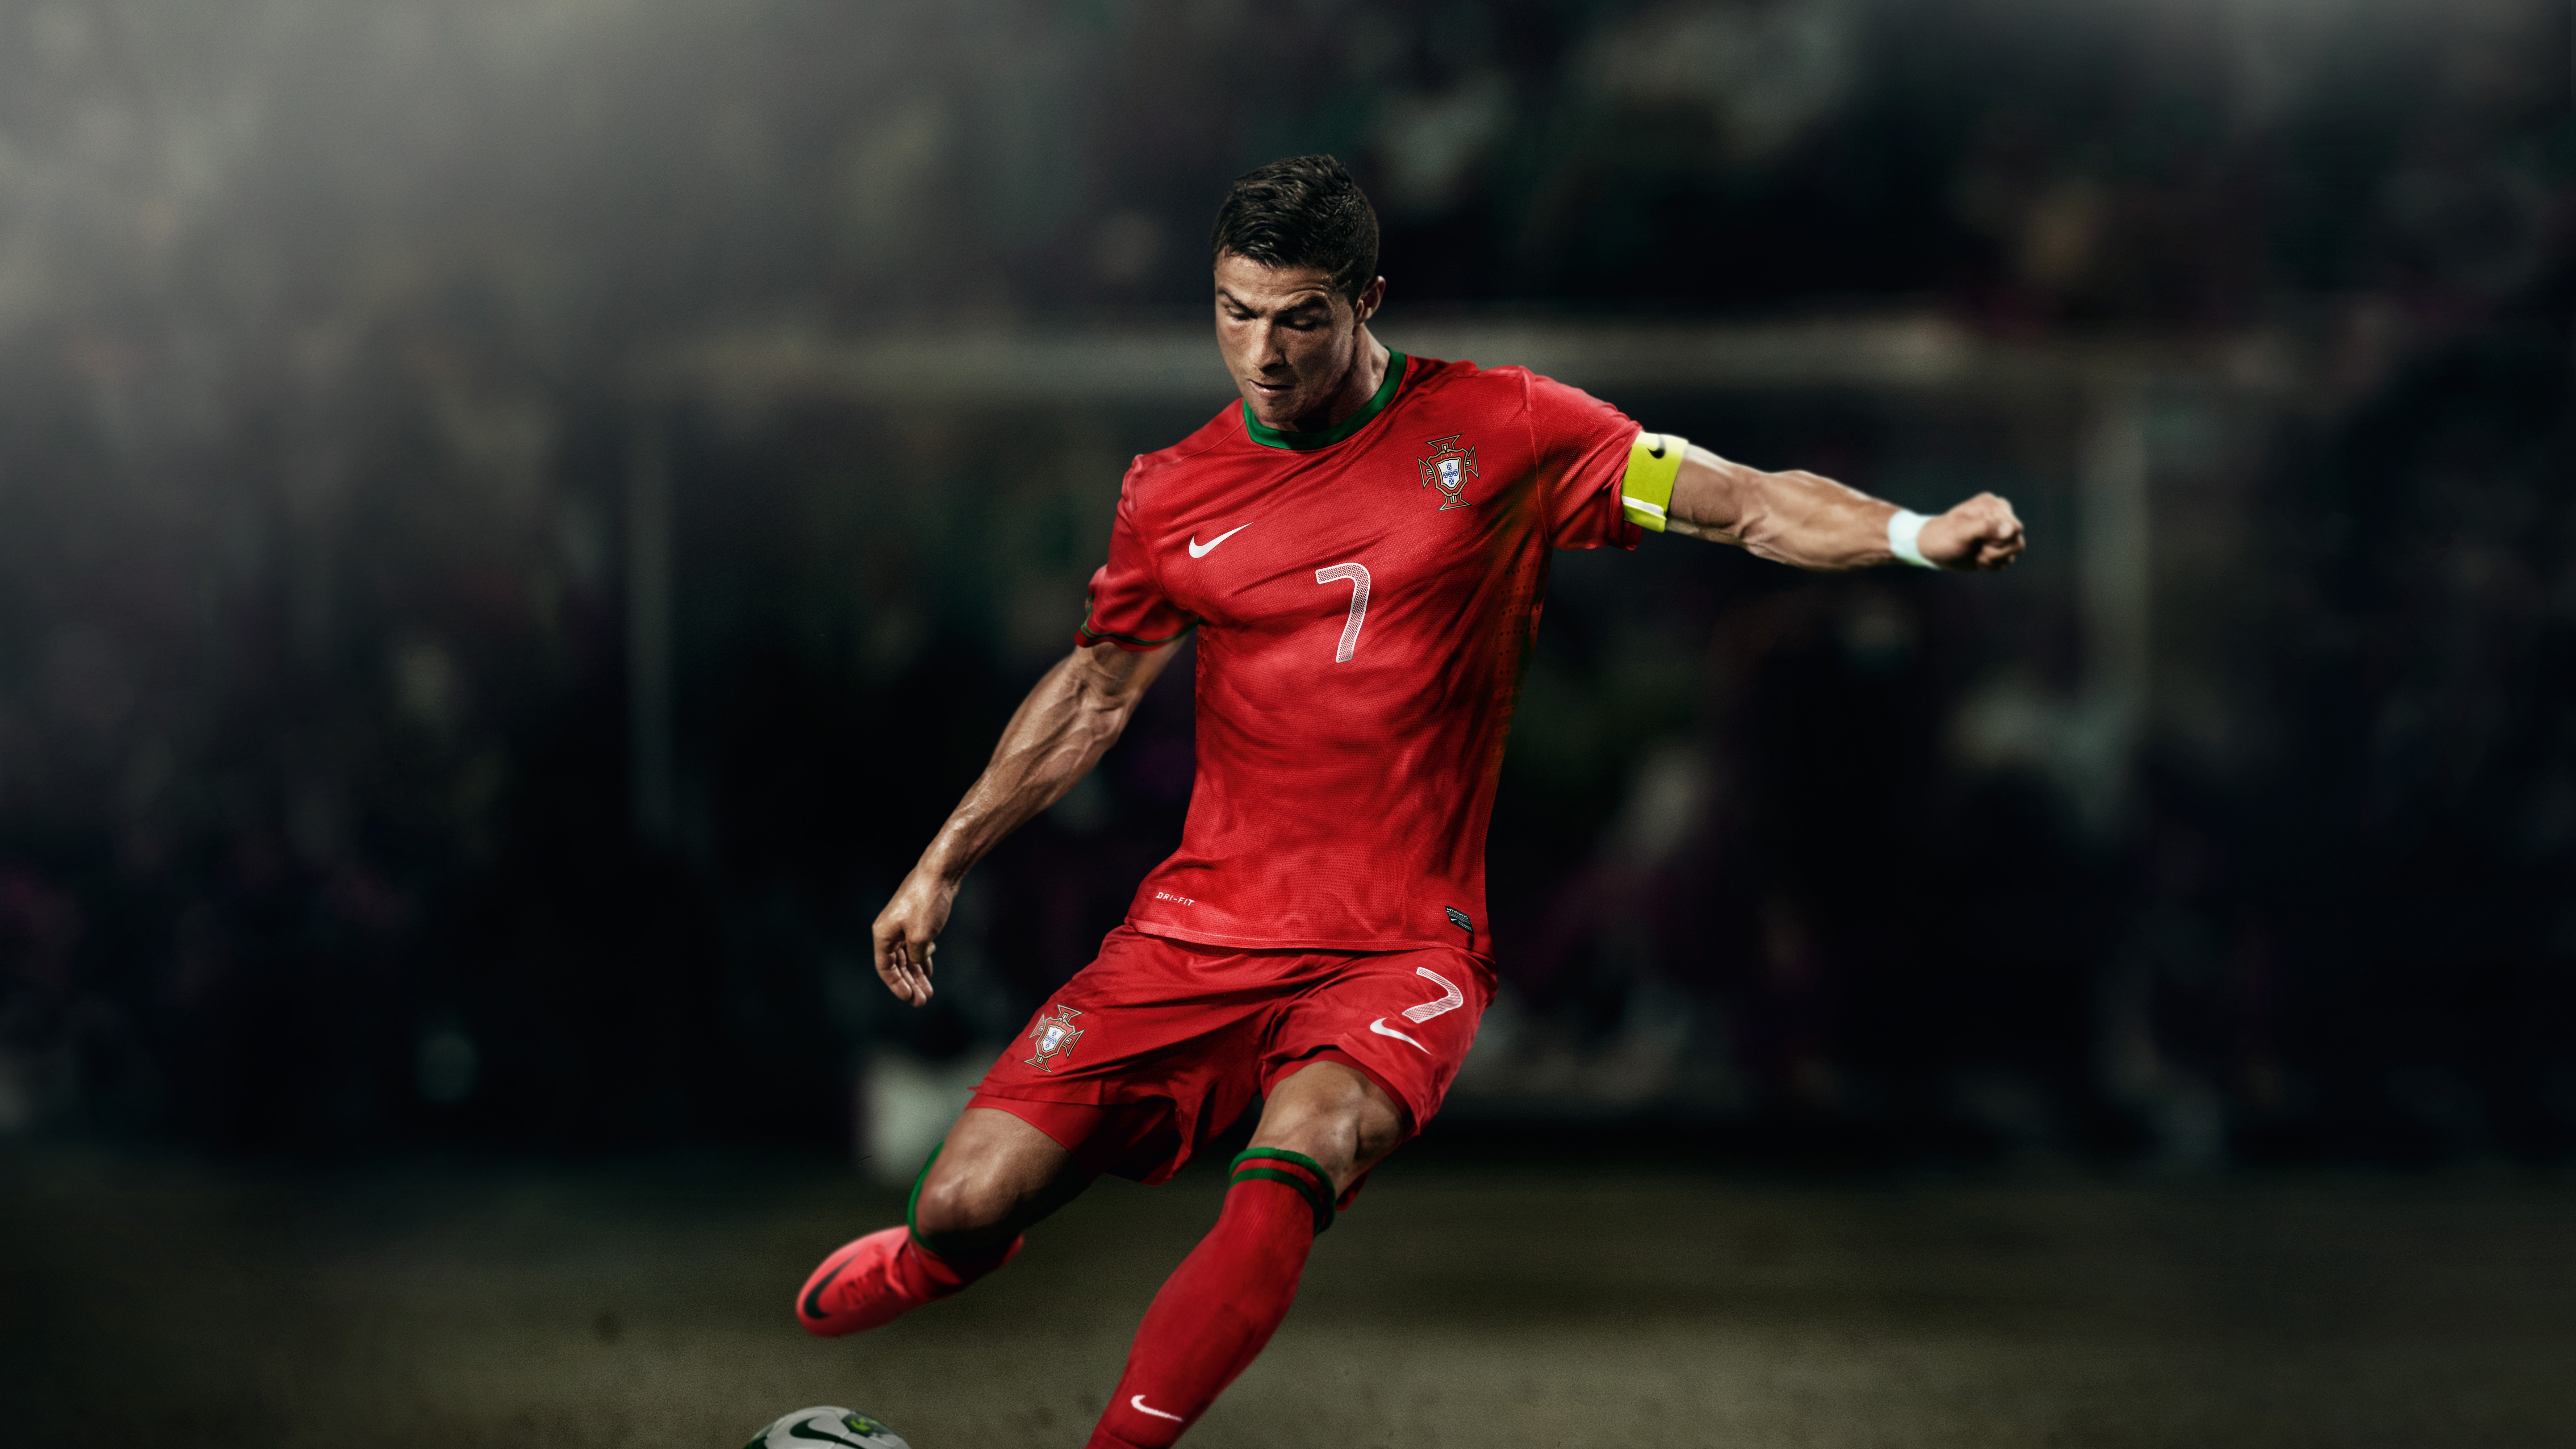 Cristiano Ronaldo Soccer Player 8k Hd Sports 4k Wallpapers Images Backgrounds Photos And Pictures